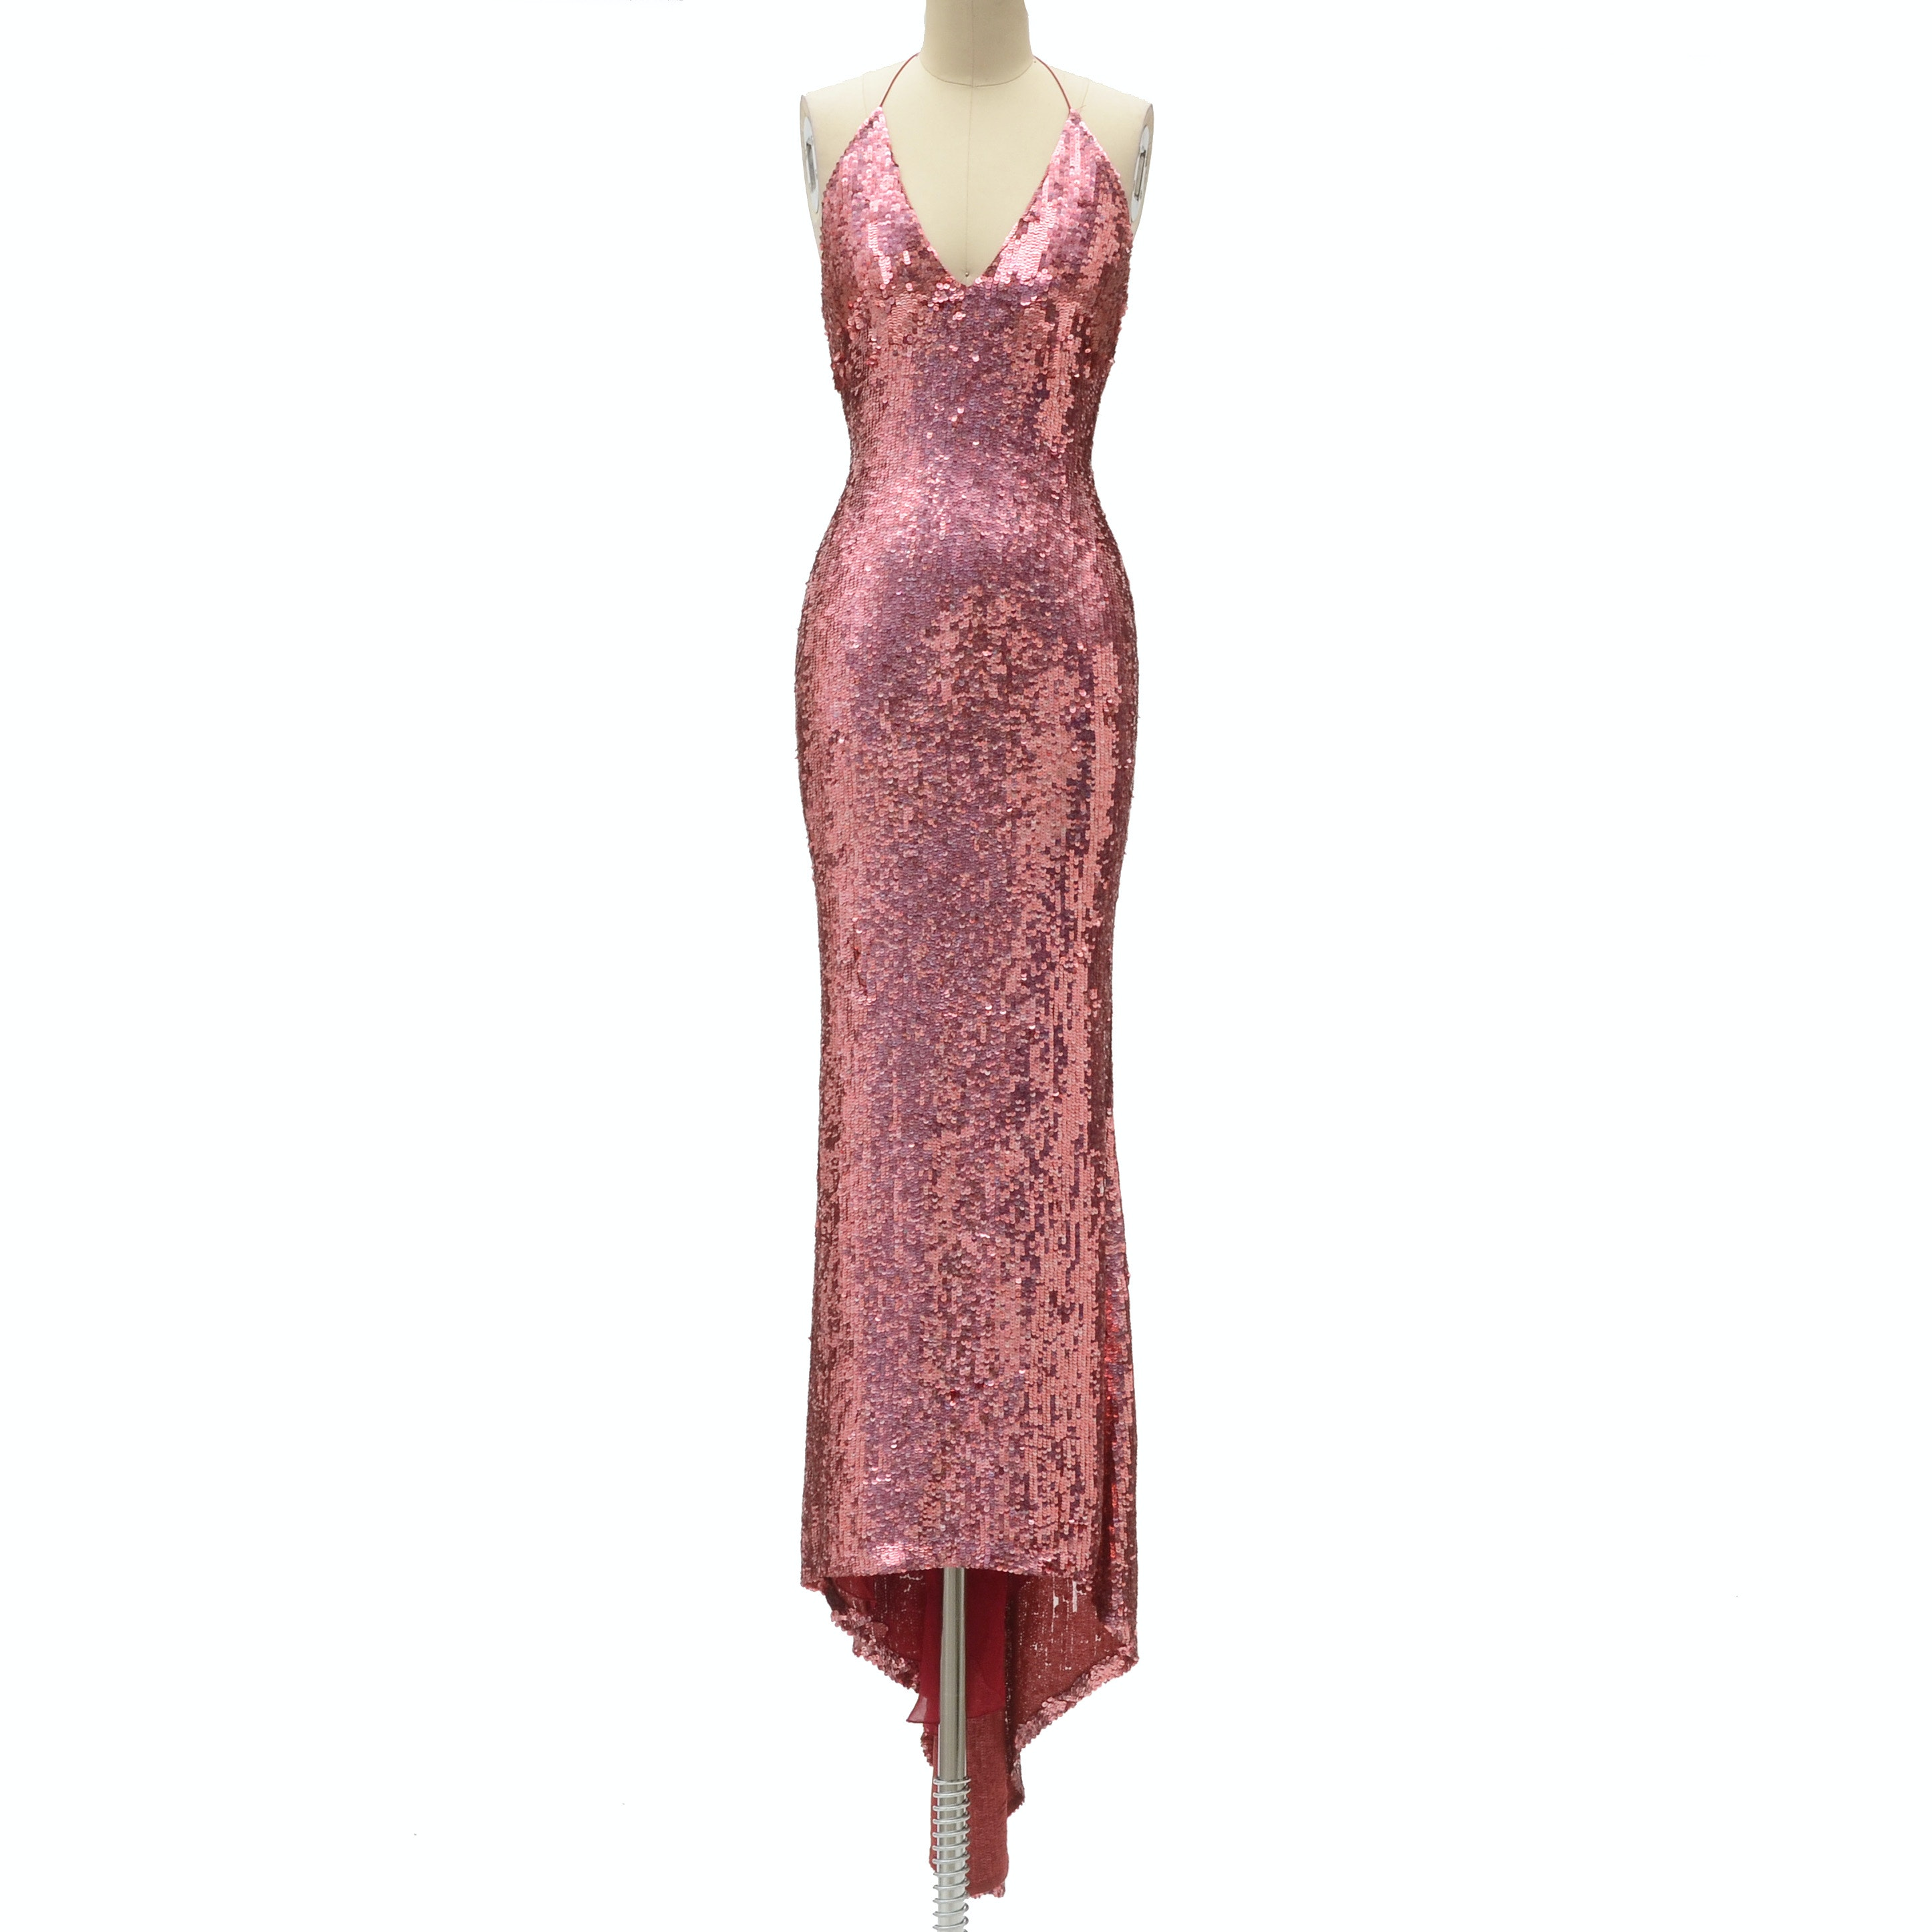 "Badgley Mischka Designer Pink Sequined Fuschia Silk Halter Strap Evening Gown with V-Cut Neckline and Signature Label That Reads ""ERICA 15612"" in Black Marker"